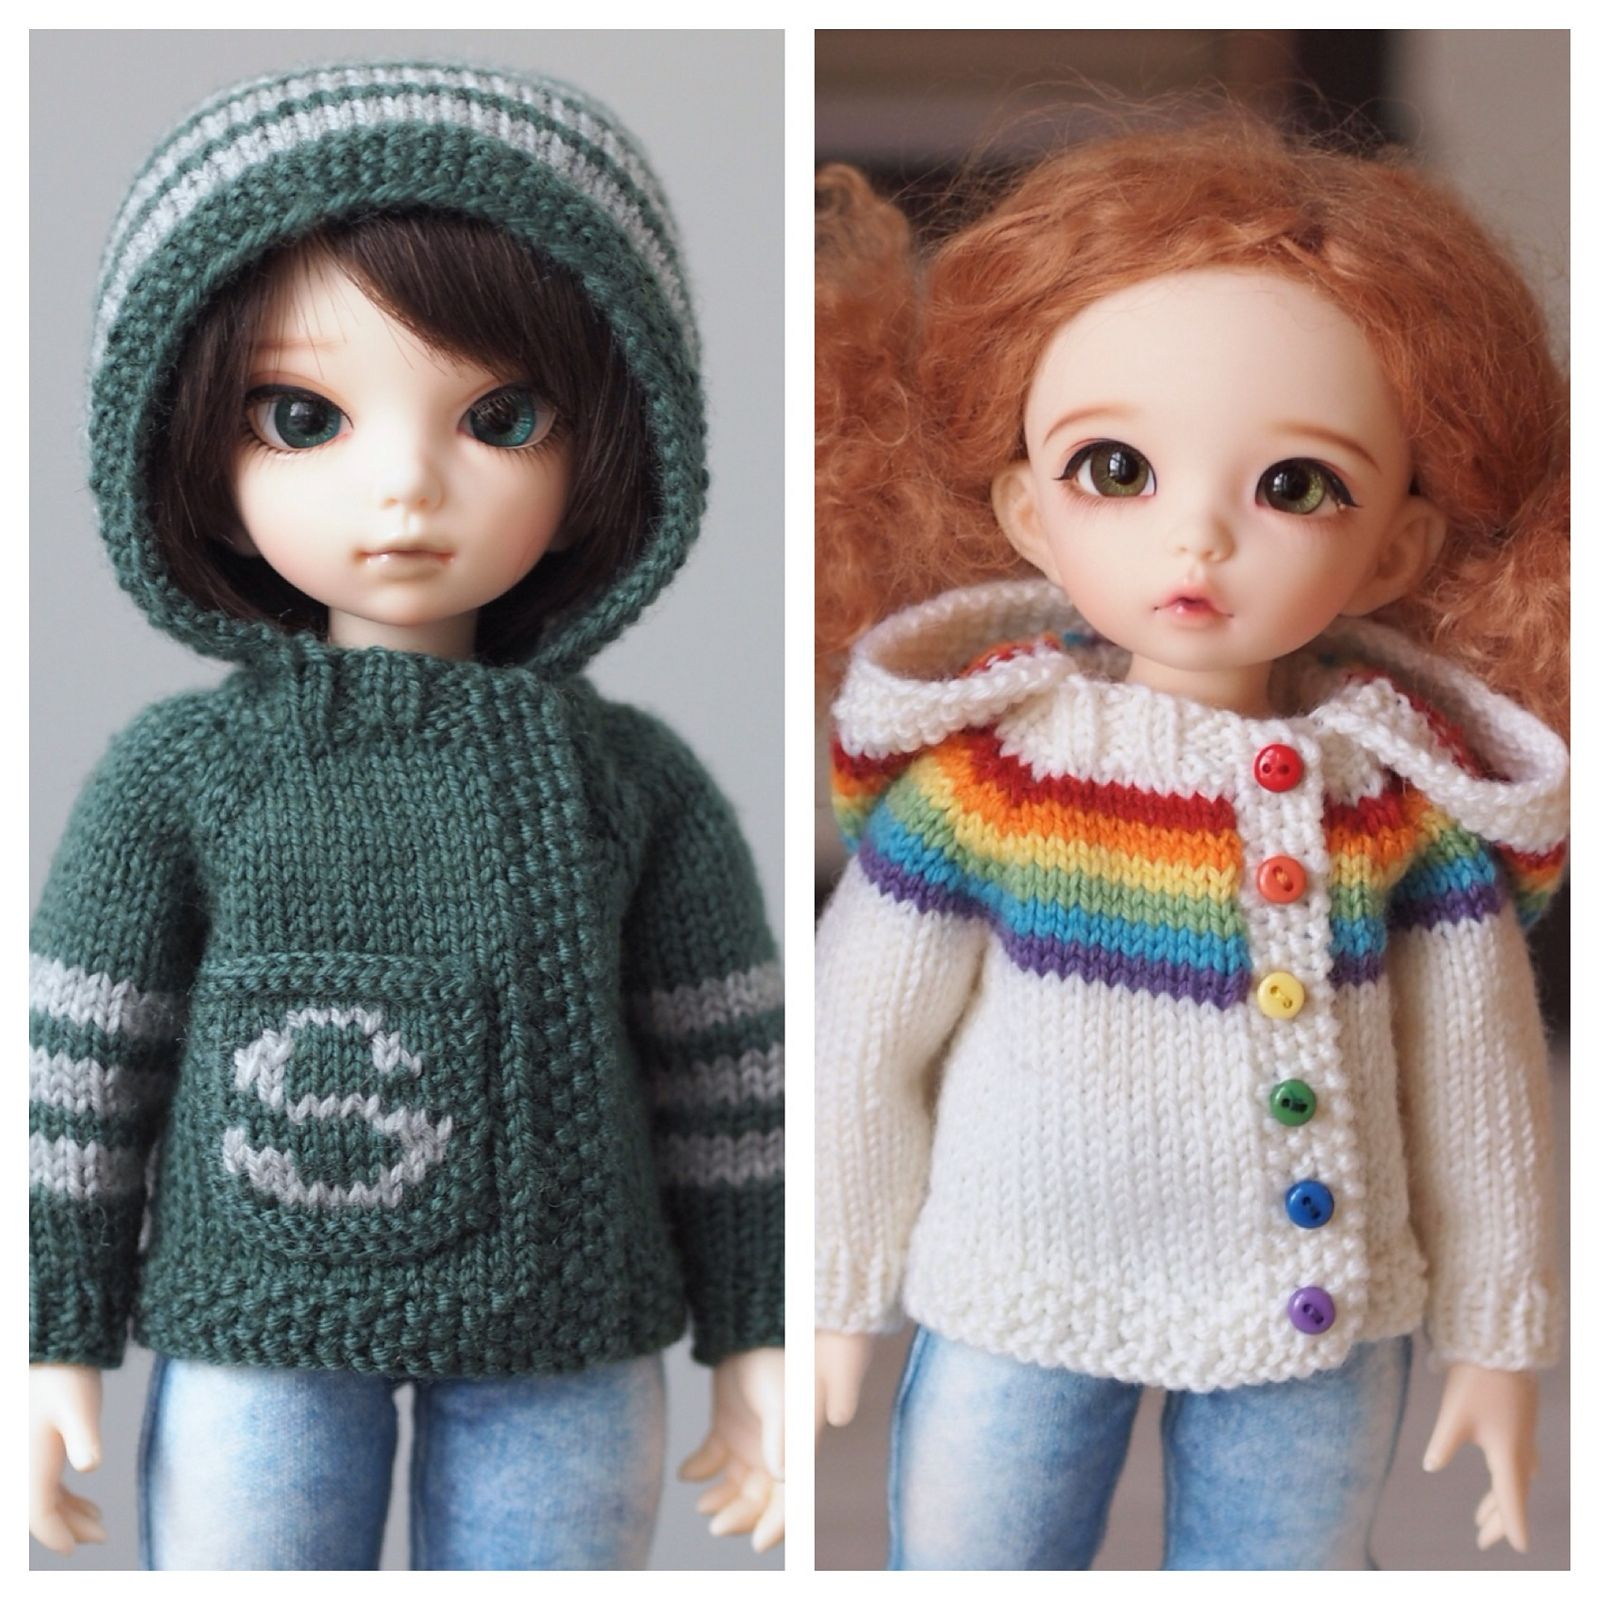 House Sweater for Littlefee Dolls pattern by Kristin Maw ...